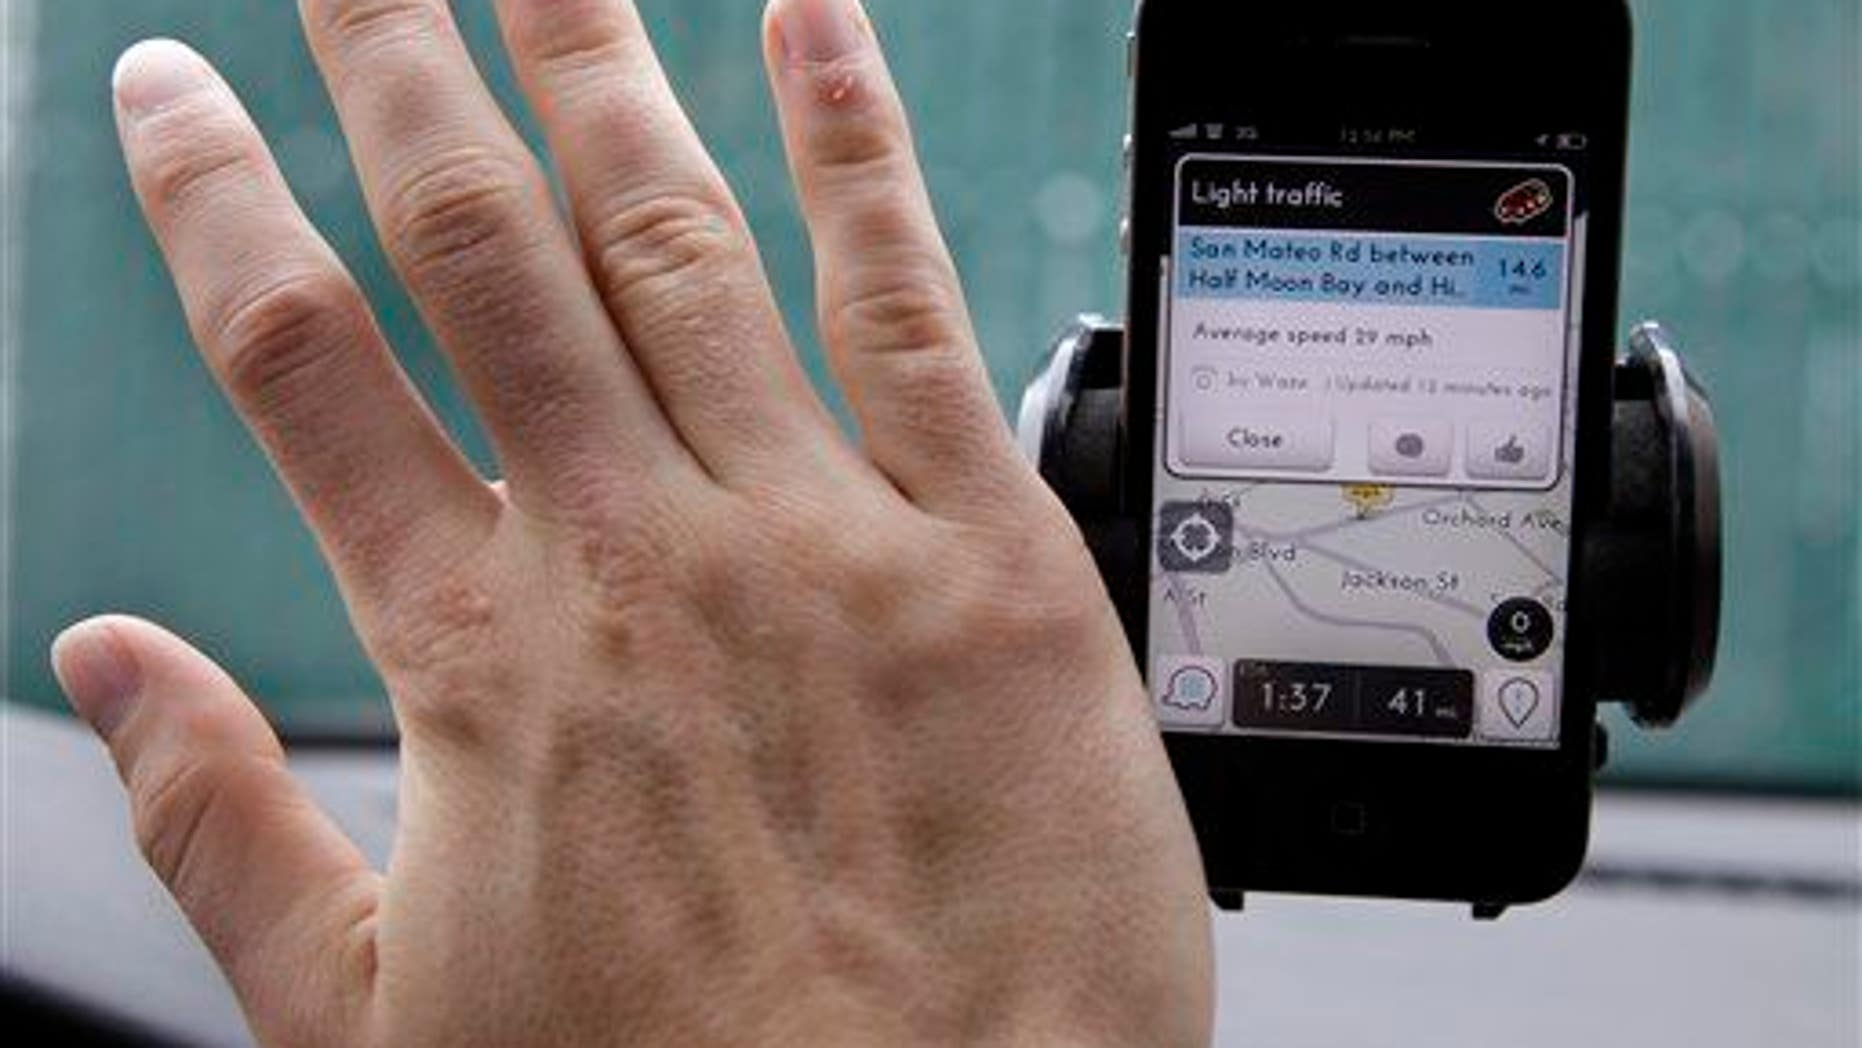 A couple's Waze app may have made a deadly mistake.